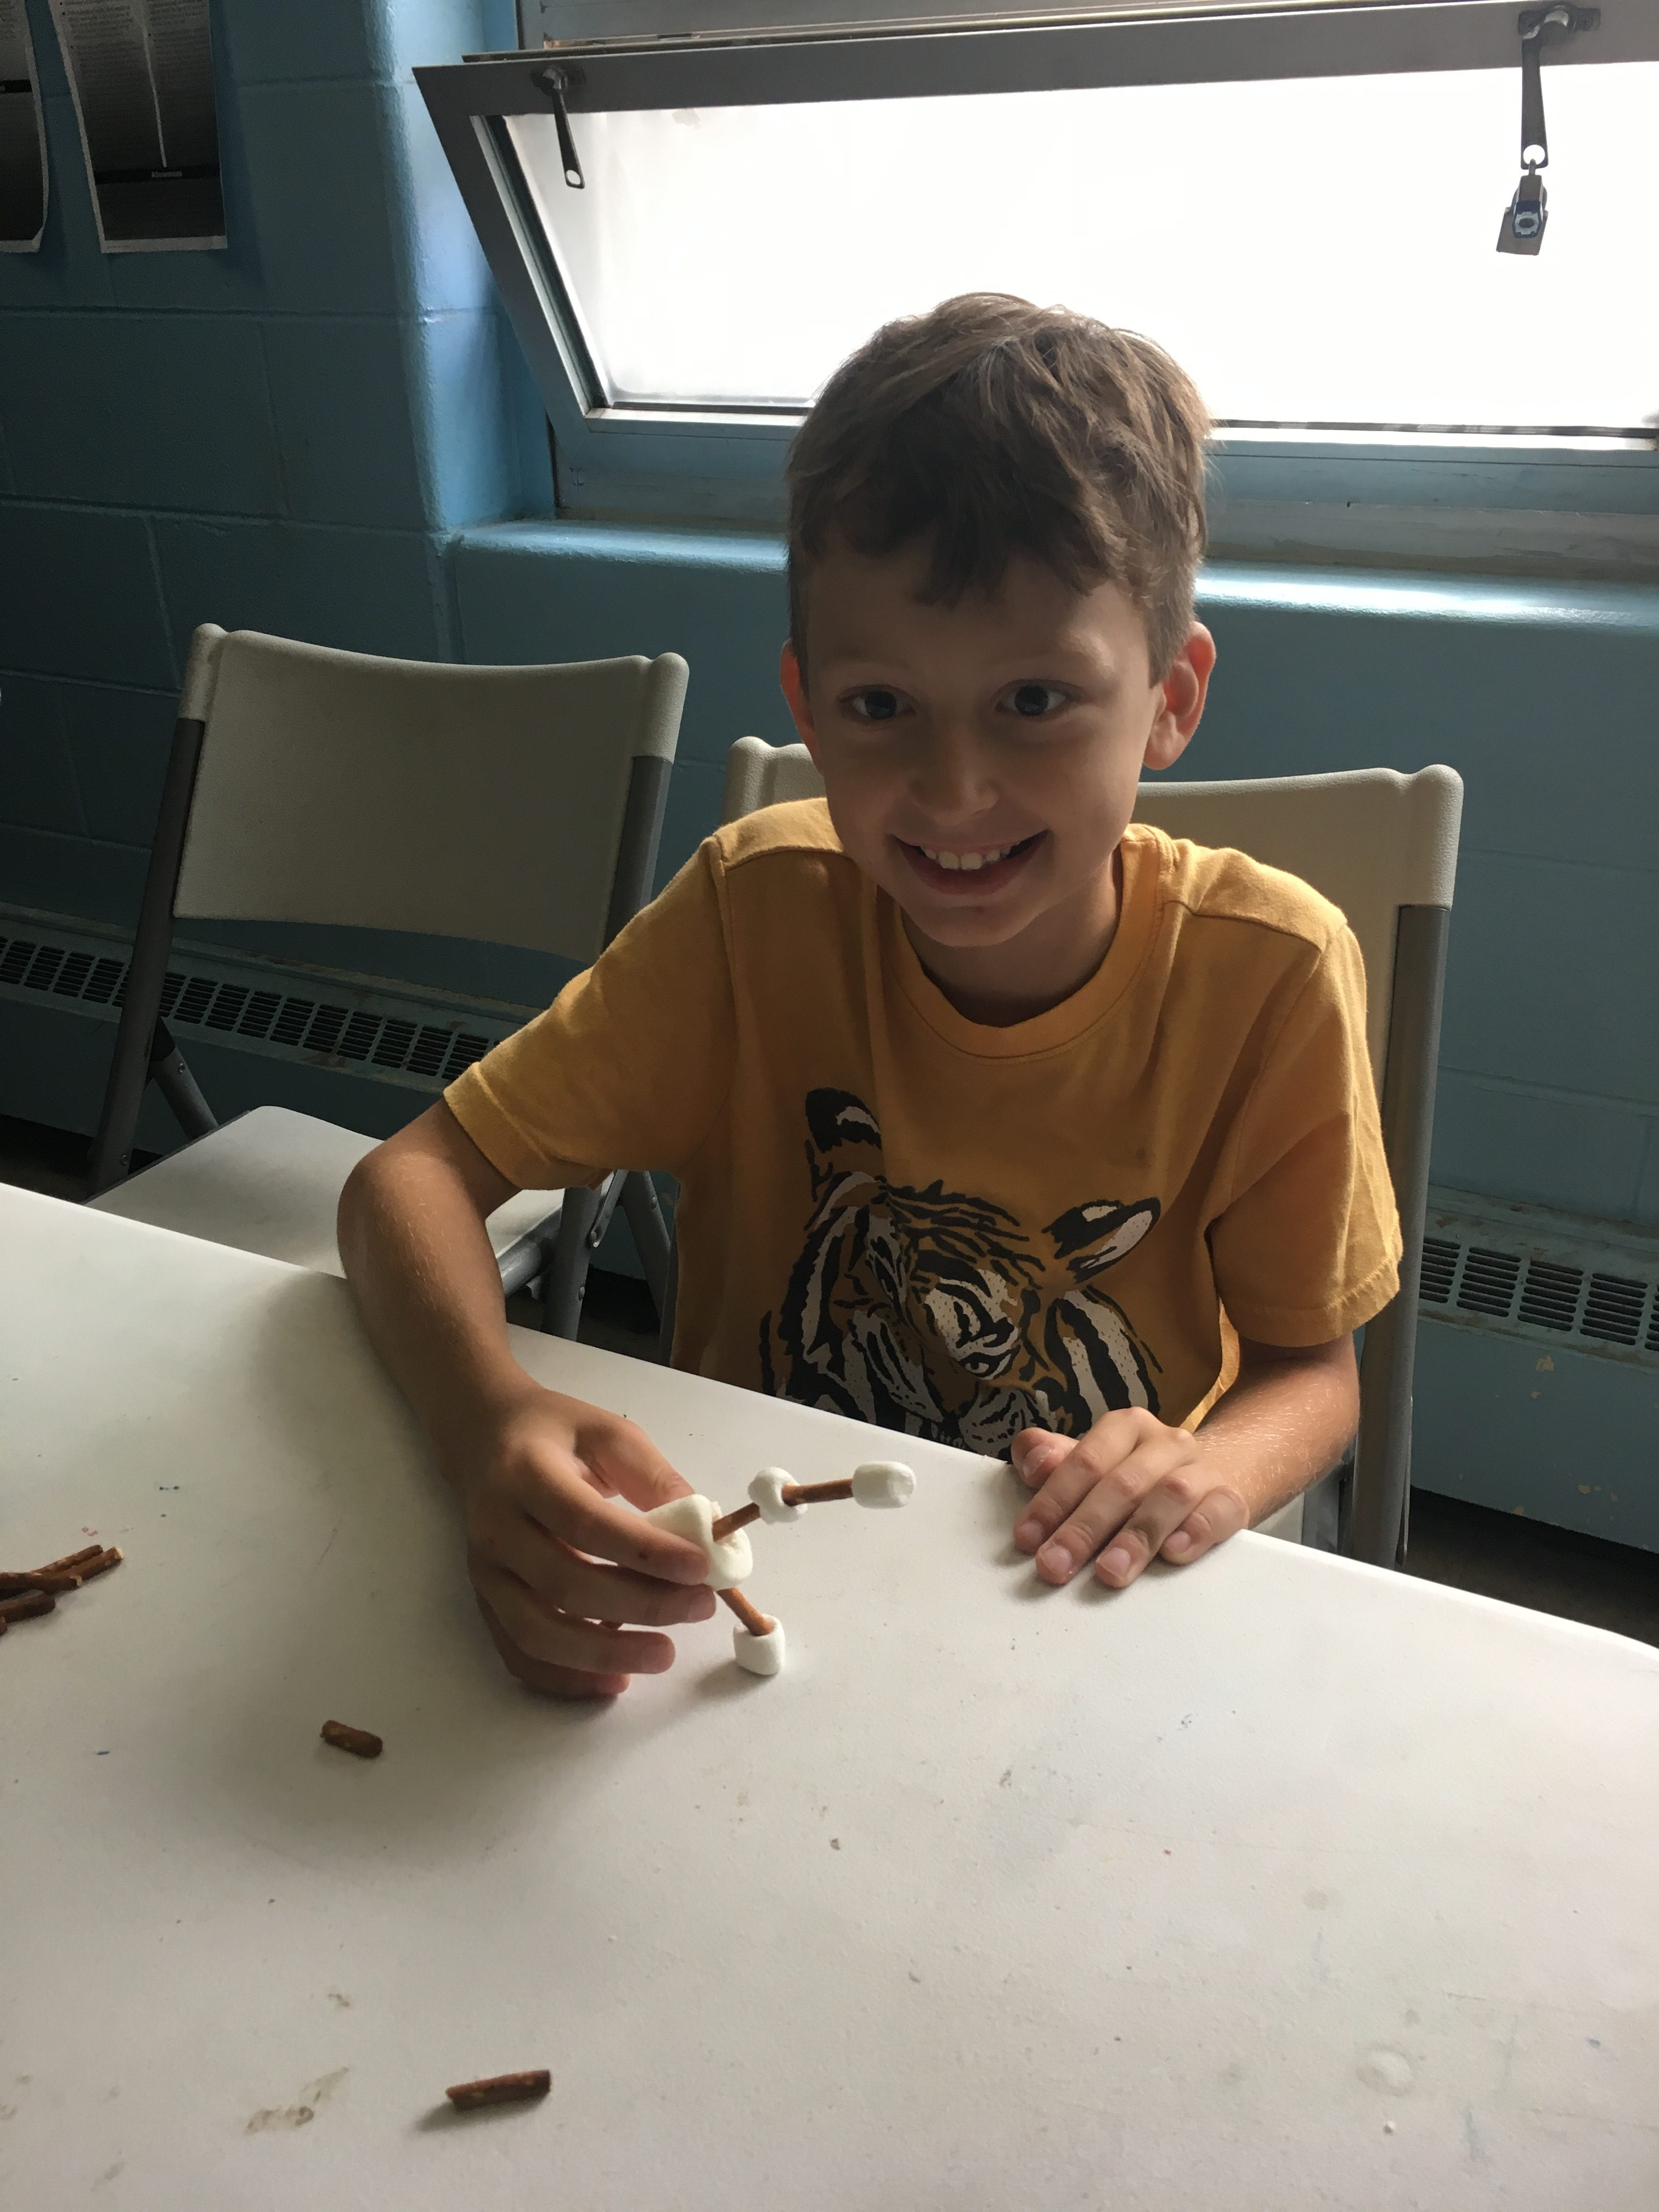 Marshmallow Challenge and Animals at Shissler Recreation Center 8/8/17